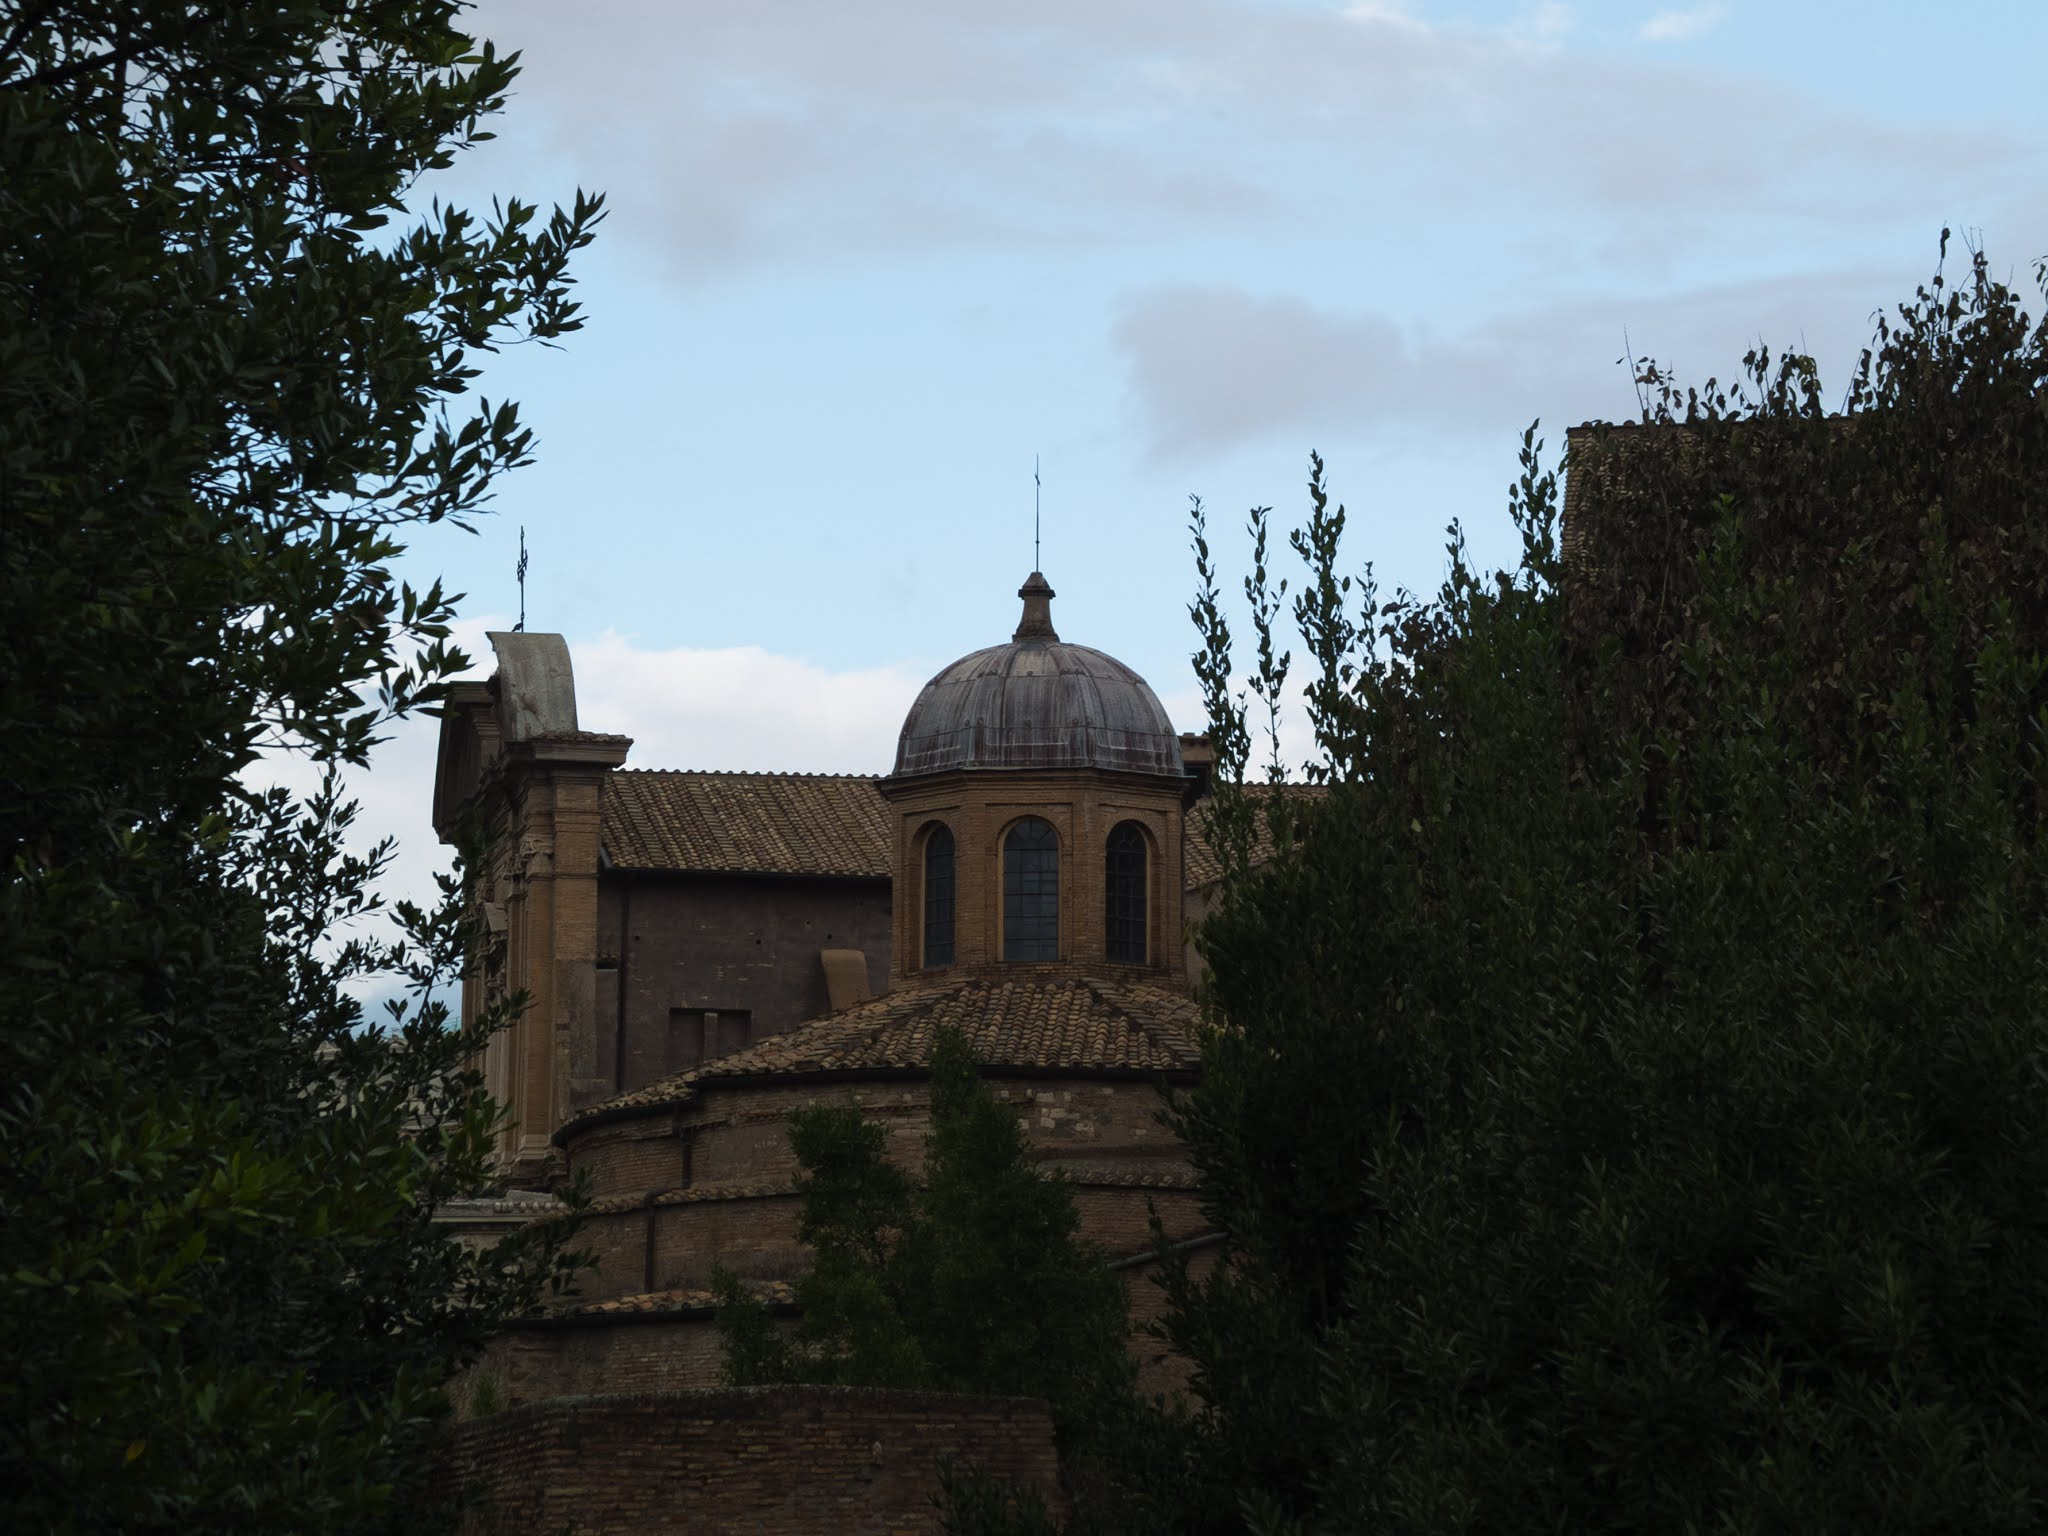 The dome of the Temple of Romulus and Remus surrounded by trees.